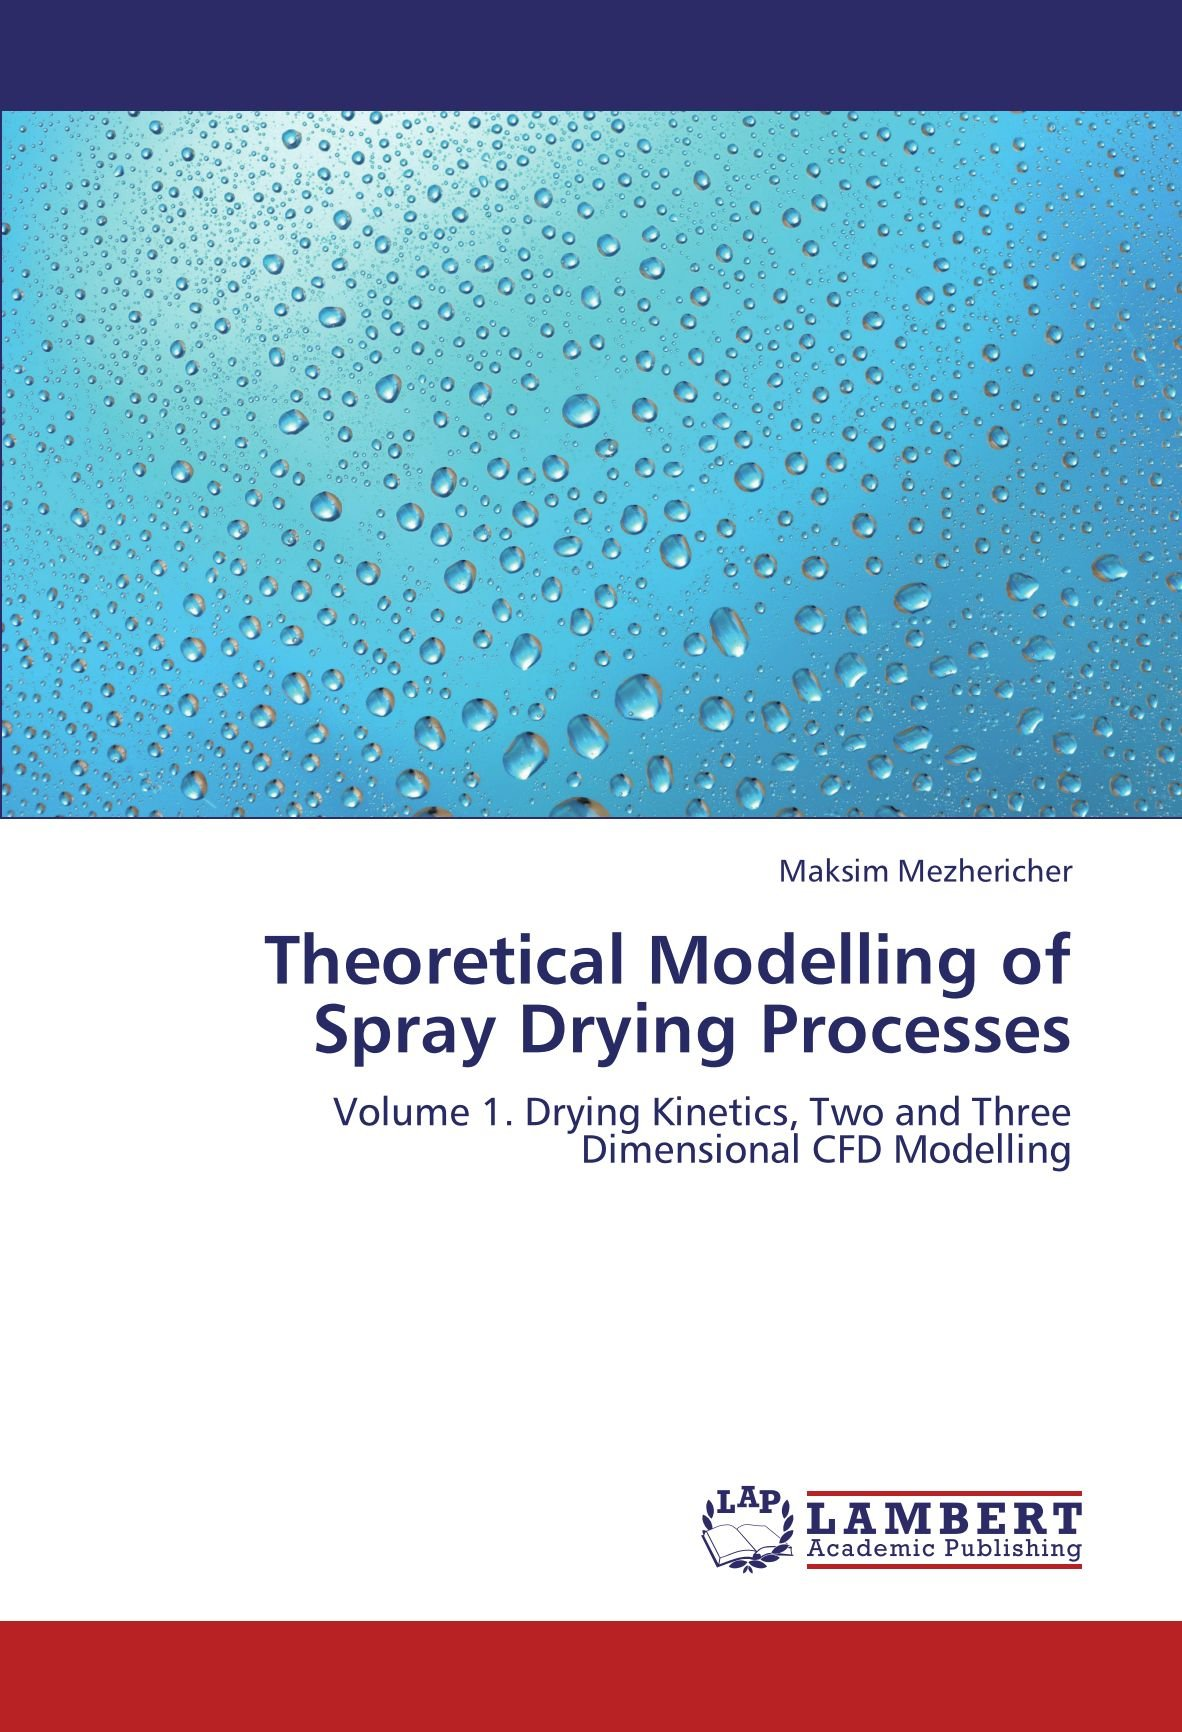 Theoretical Modelling of Spray Drying Processes: Volume 1. Drying Kinetics, Two and Three Dimensional CFD Modelling ebook